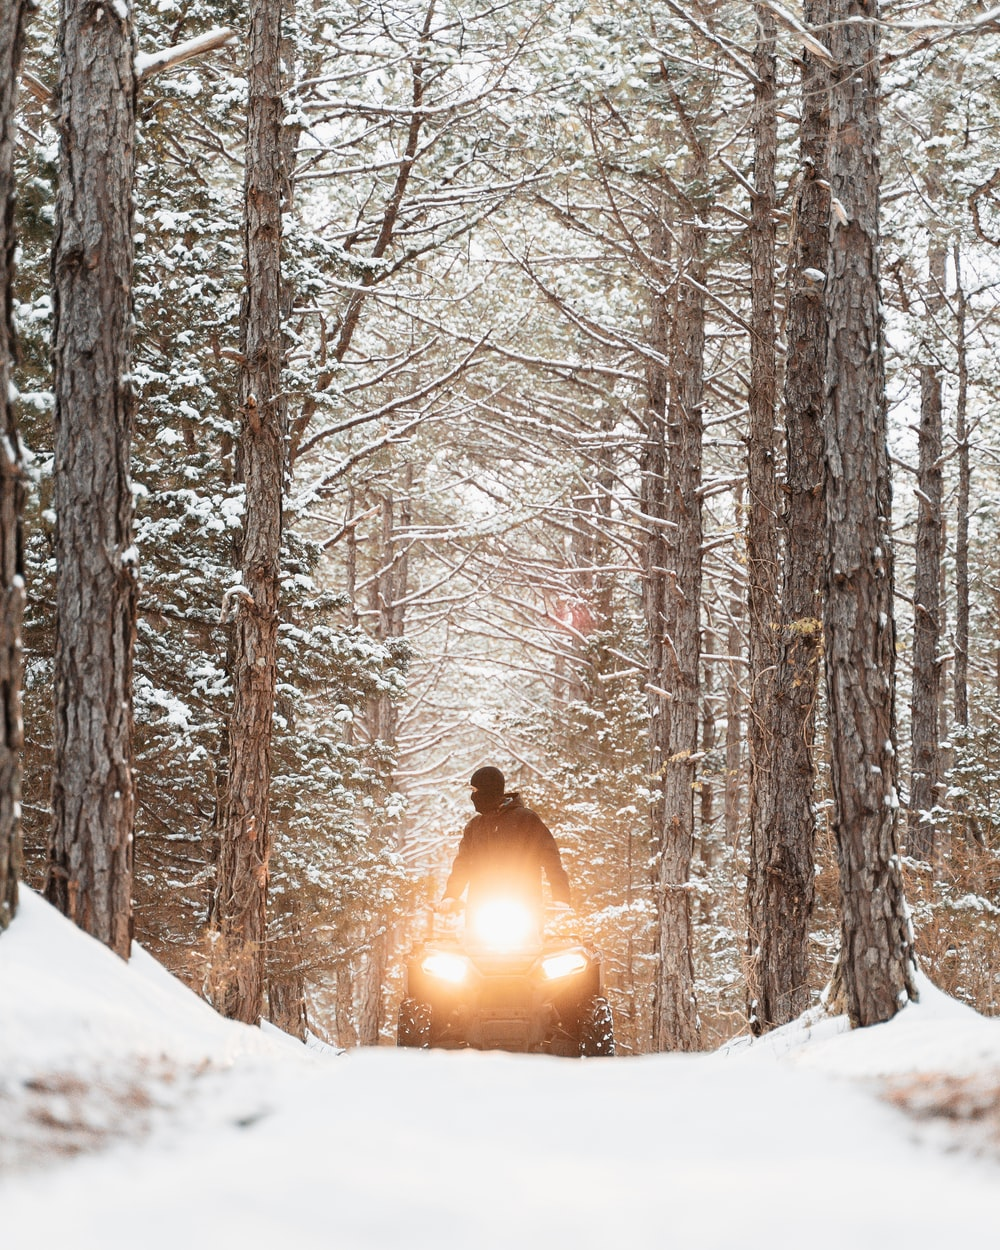 person in black jacket standing on snow covered ground near bare trees during daytime